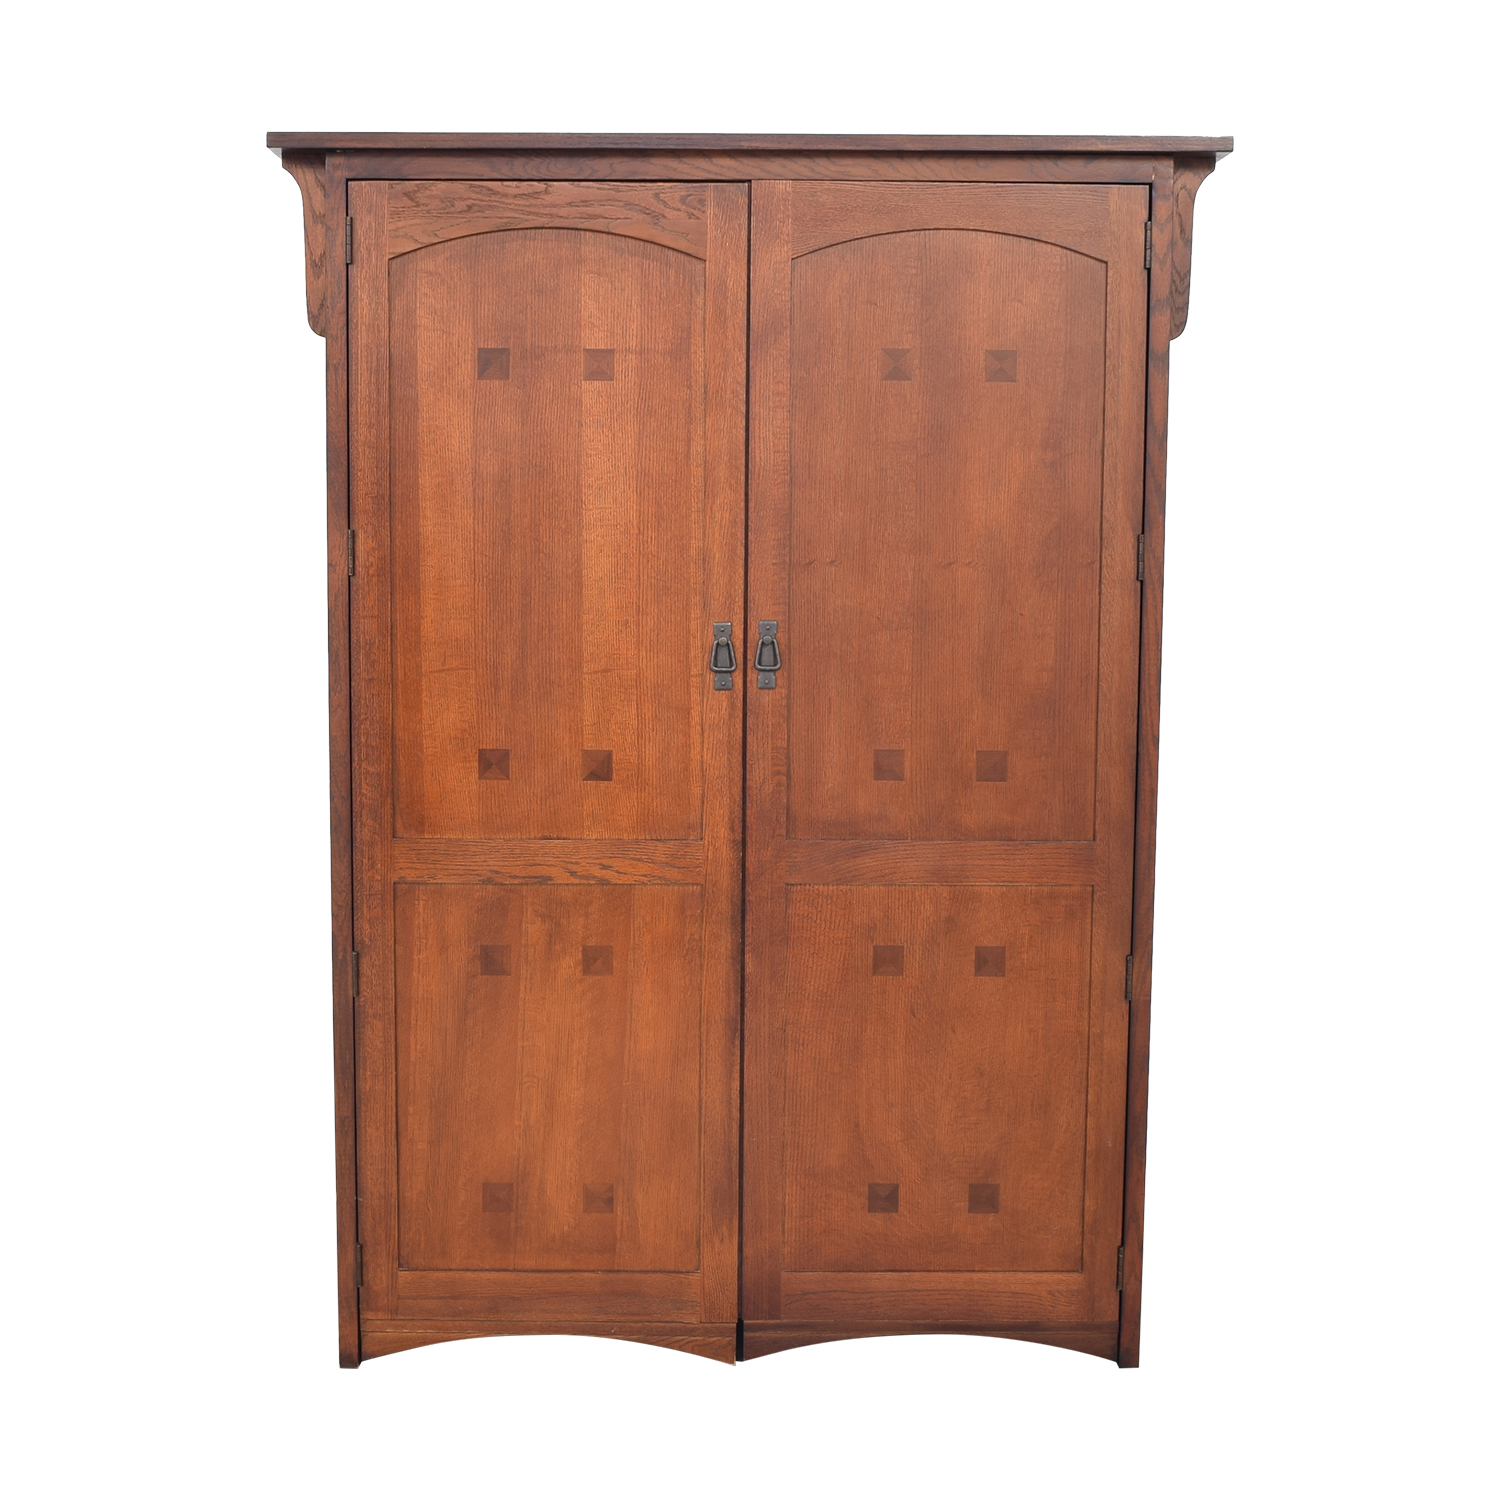 Southern Furniture of Conover Southern Furniture of Conover Armoire Desk price